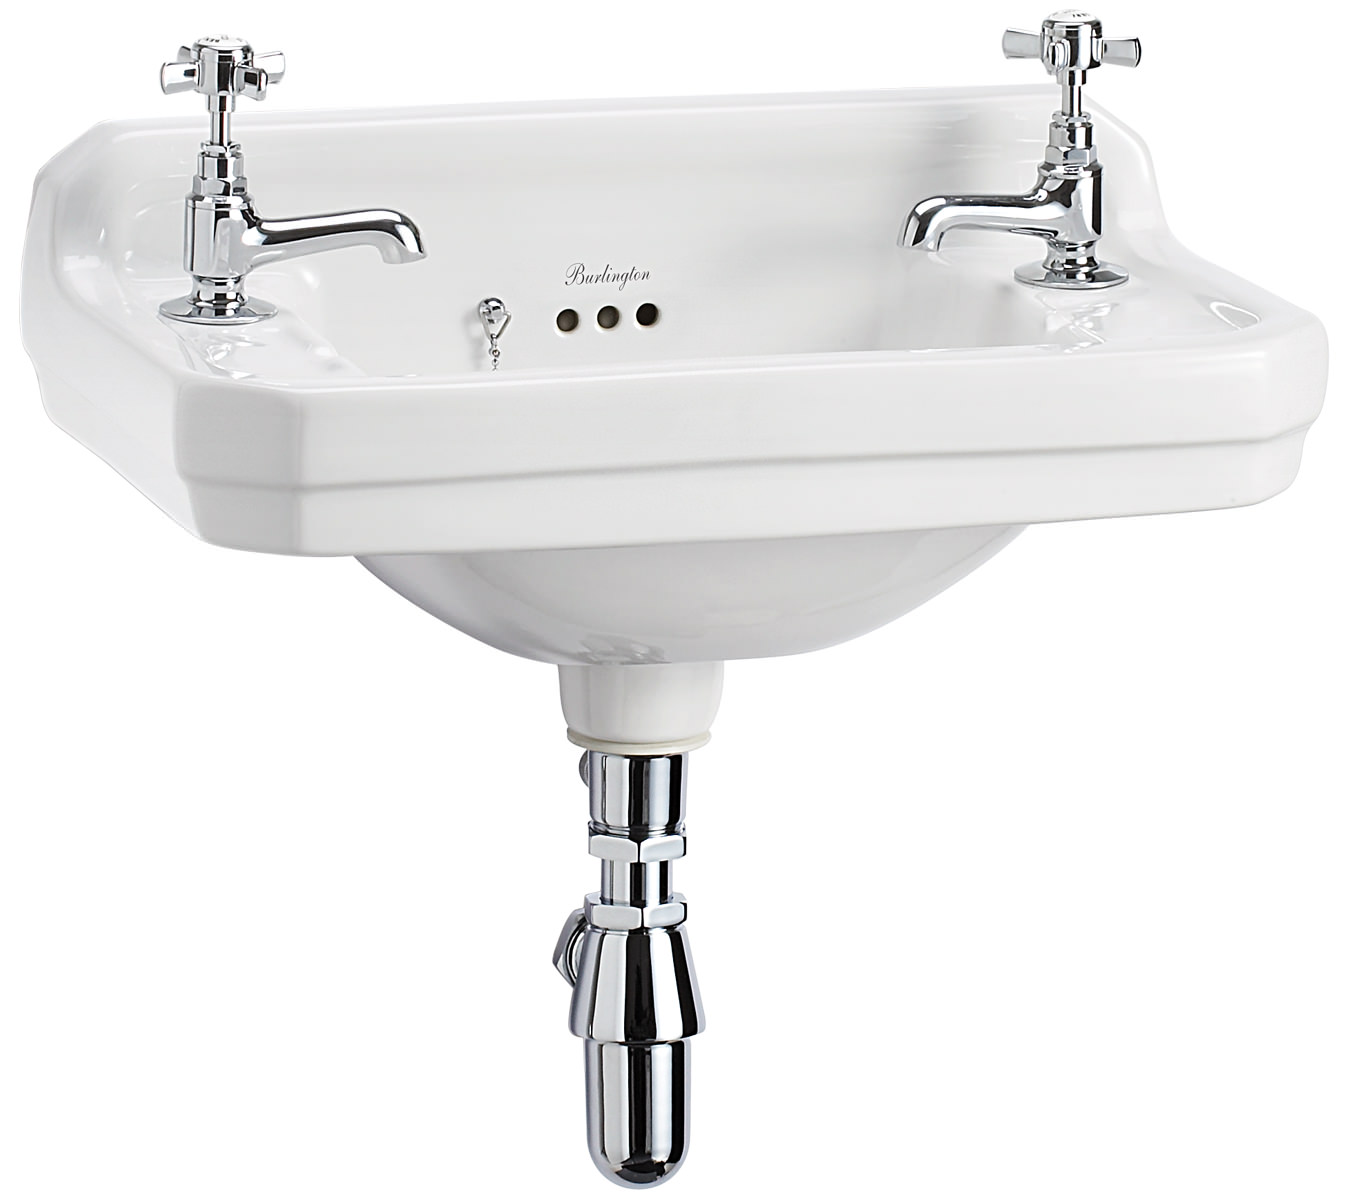 Burlington Edwardian Wall Mounted 510mm Cloakroom Basin B8